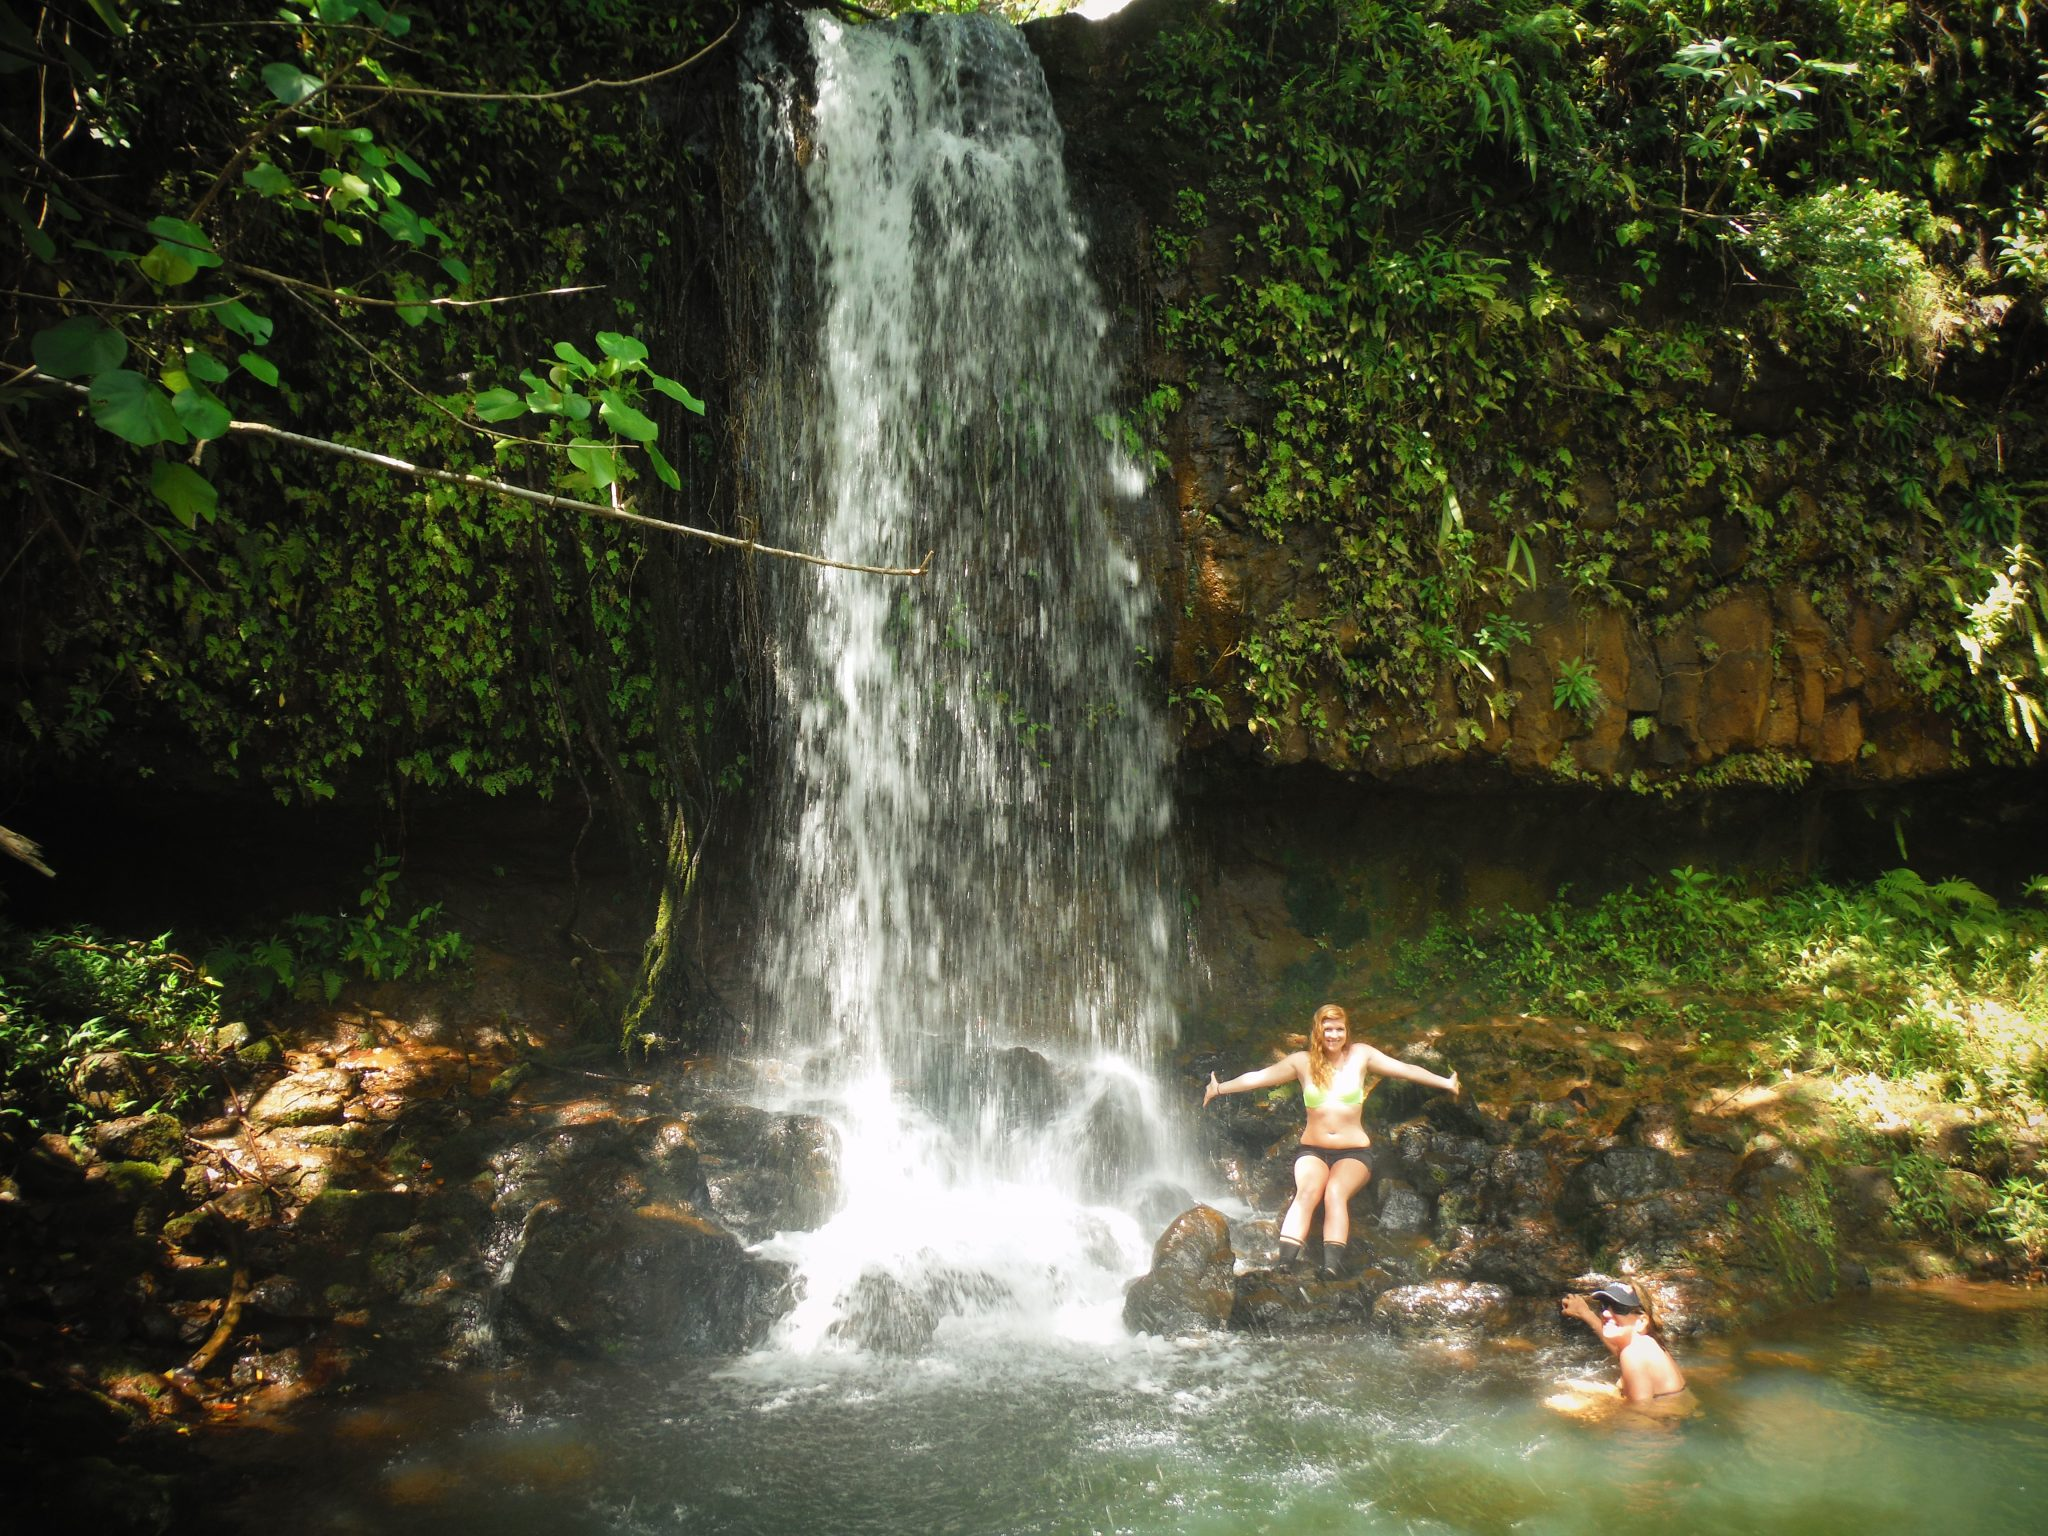 Kauai is the best Hawaiian island for exploring lush landscape and waterfalls.